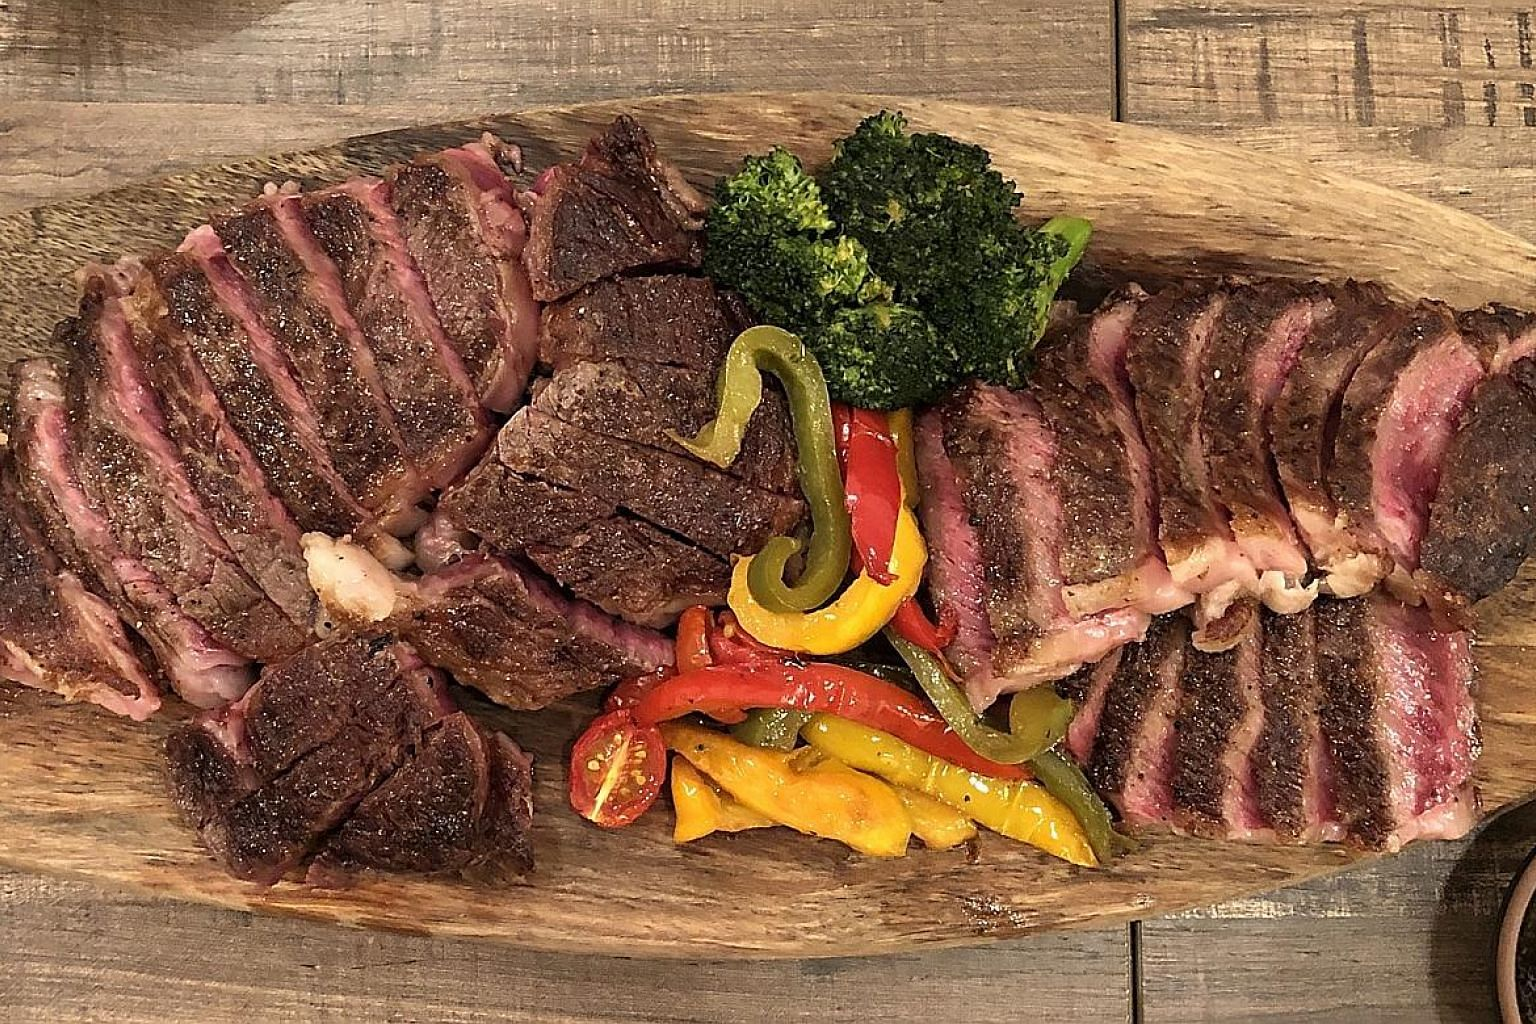 A combination platter of ribeye and sirloin.